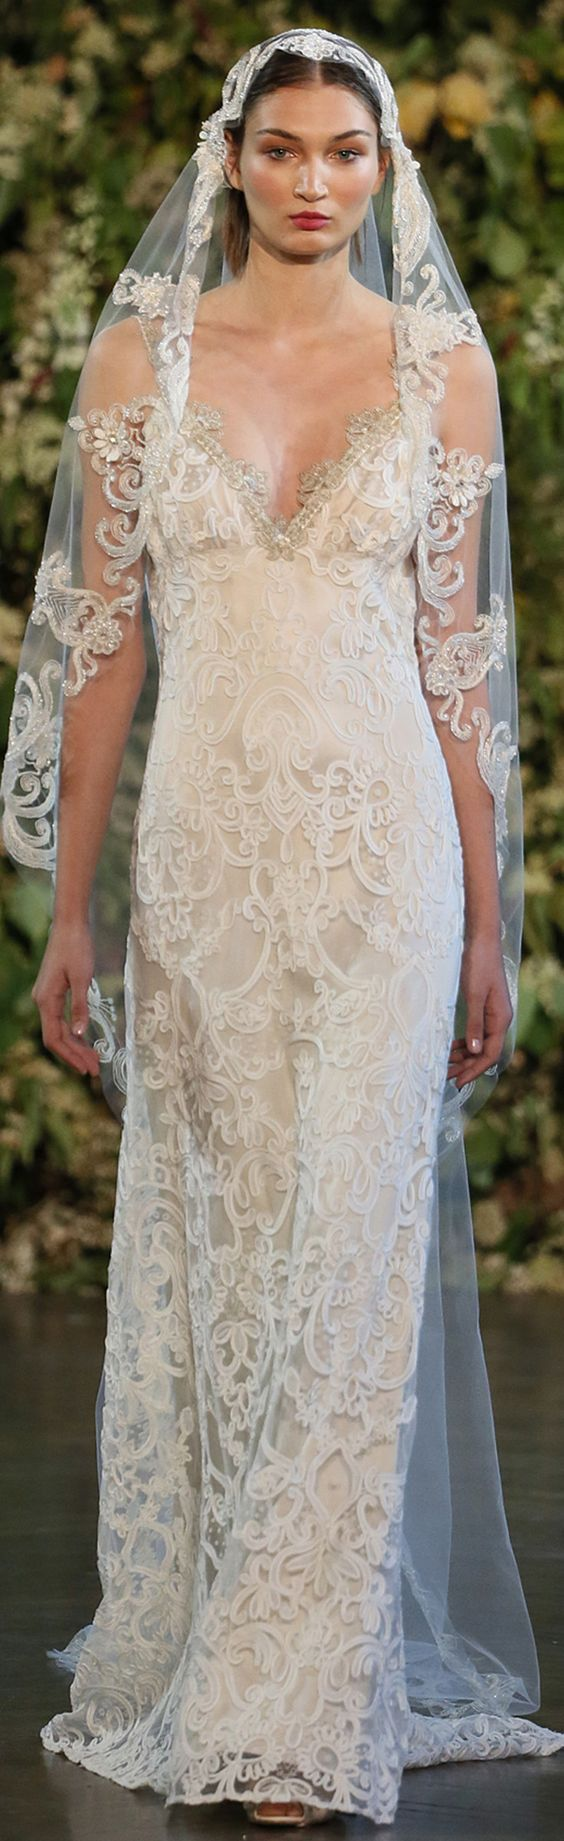 bridal veil mature singles Browse pictures and advice and for brides and wedding shops from the uk's leading wedding veil, tiara, jewellery and petticoat designer  try a single tier veil .